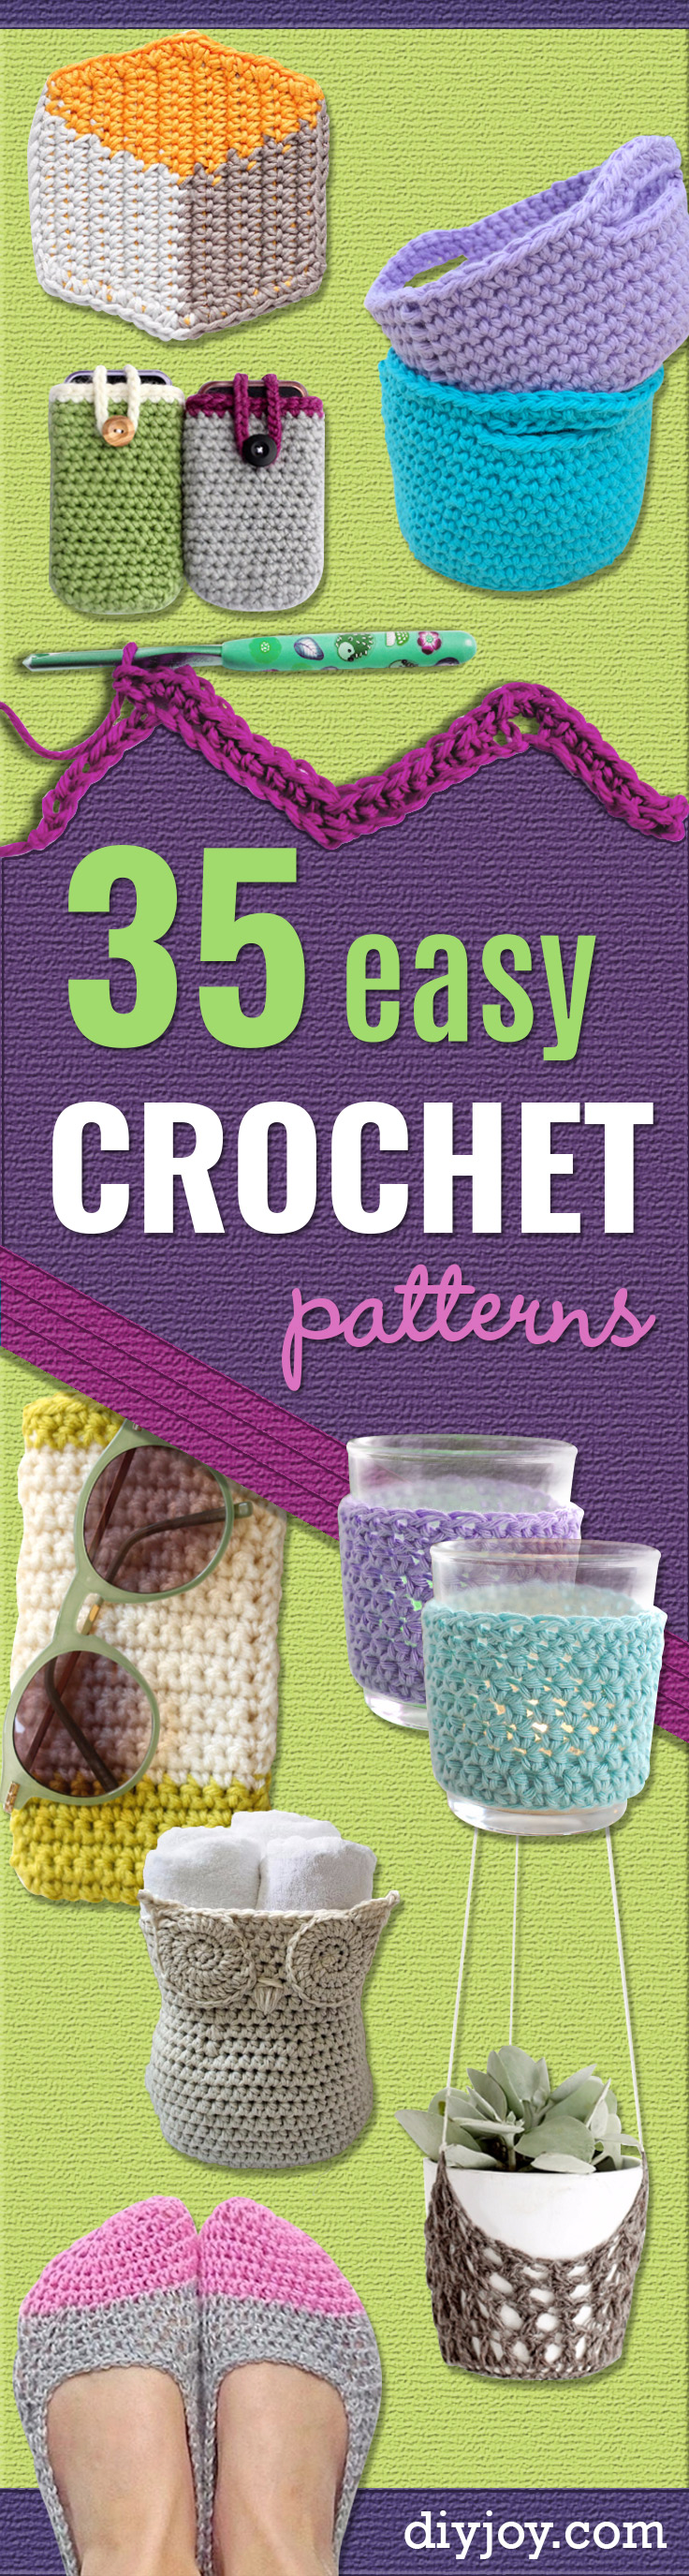 35 Easy Crochet Patterns - Creative Step by Step Crocheted Crafts Make Cool DIY Gifts for Friends and Family - Crochet Patterns For Beginners, Quick And Easy Crochet Patterns, Crochet Ideas To Try, Crochet Ideas To Make And Sell, Easy Crochet Ideas